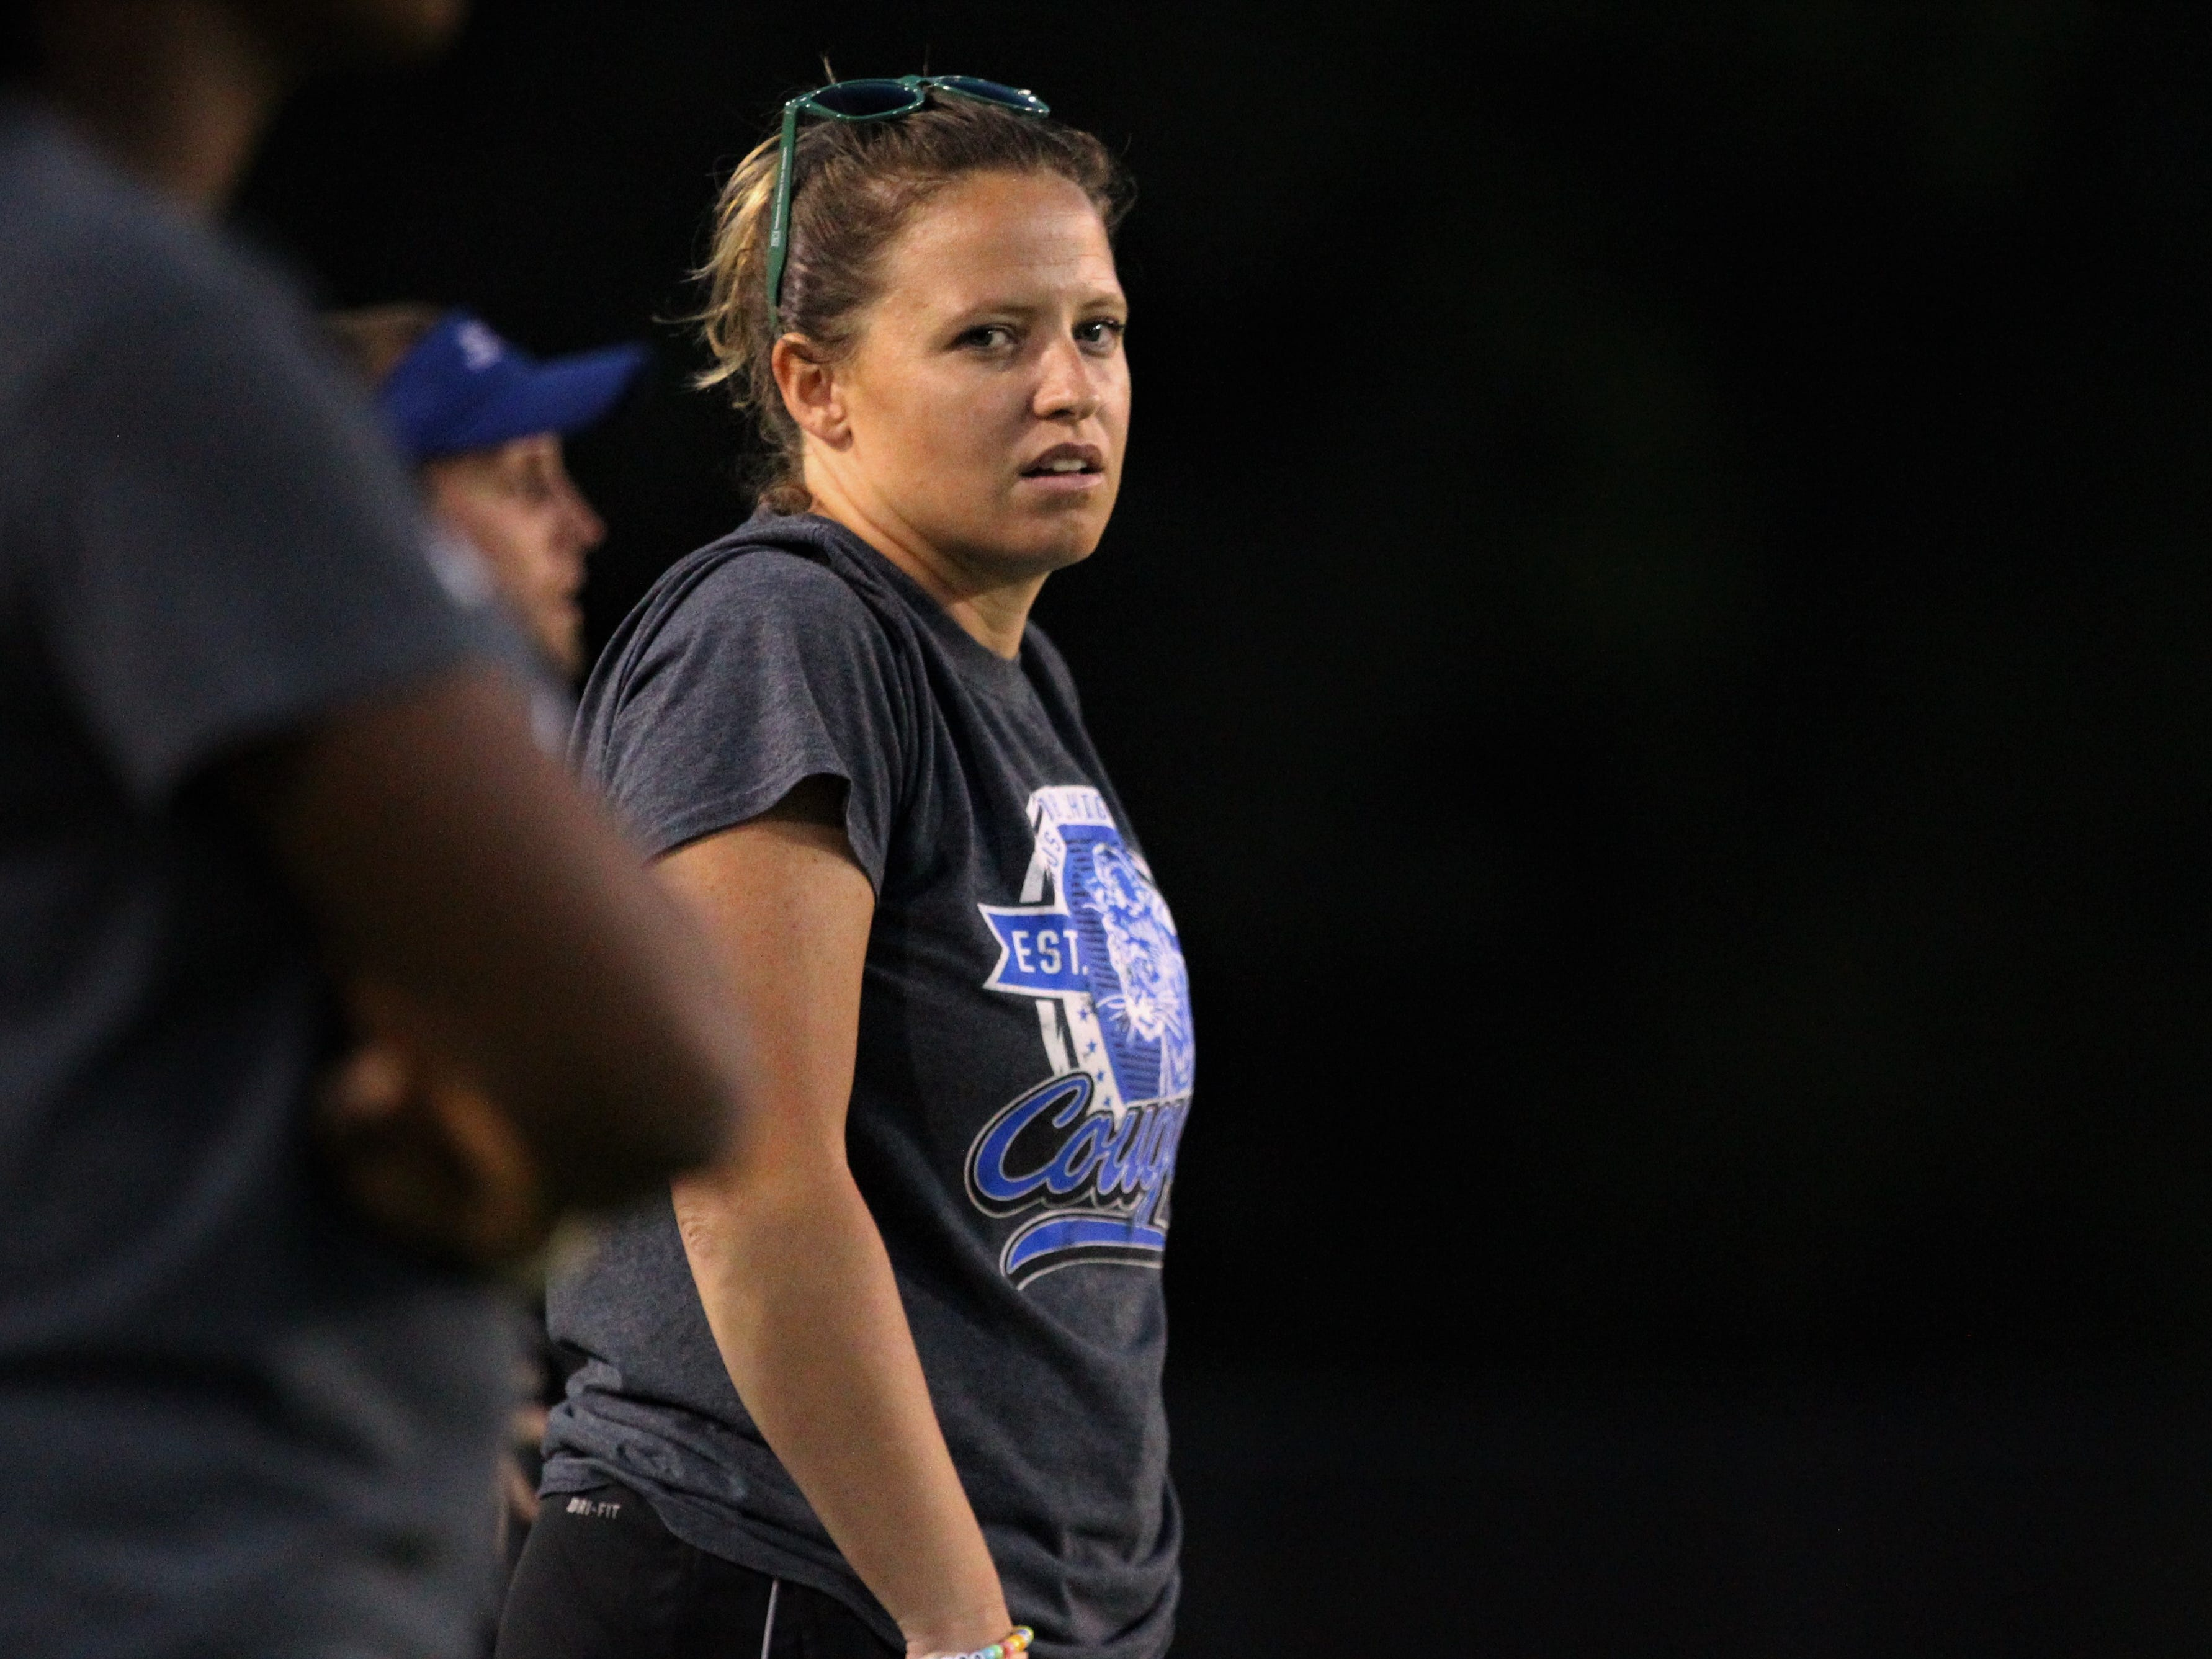 Godby flag football coach Chelsea Parmer walks the sidelines as the Cougars beat Lincoln 25-6 at Gene Cox Stadium on March 14, 2019.